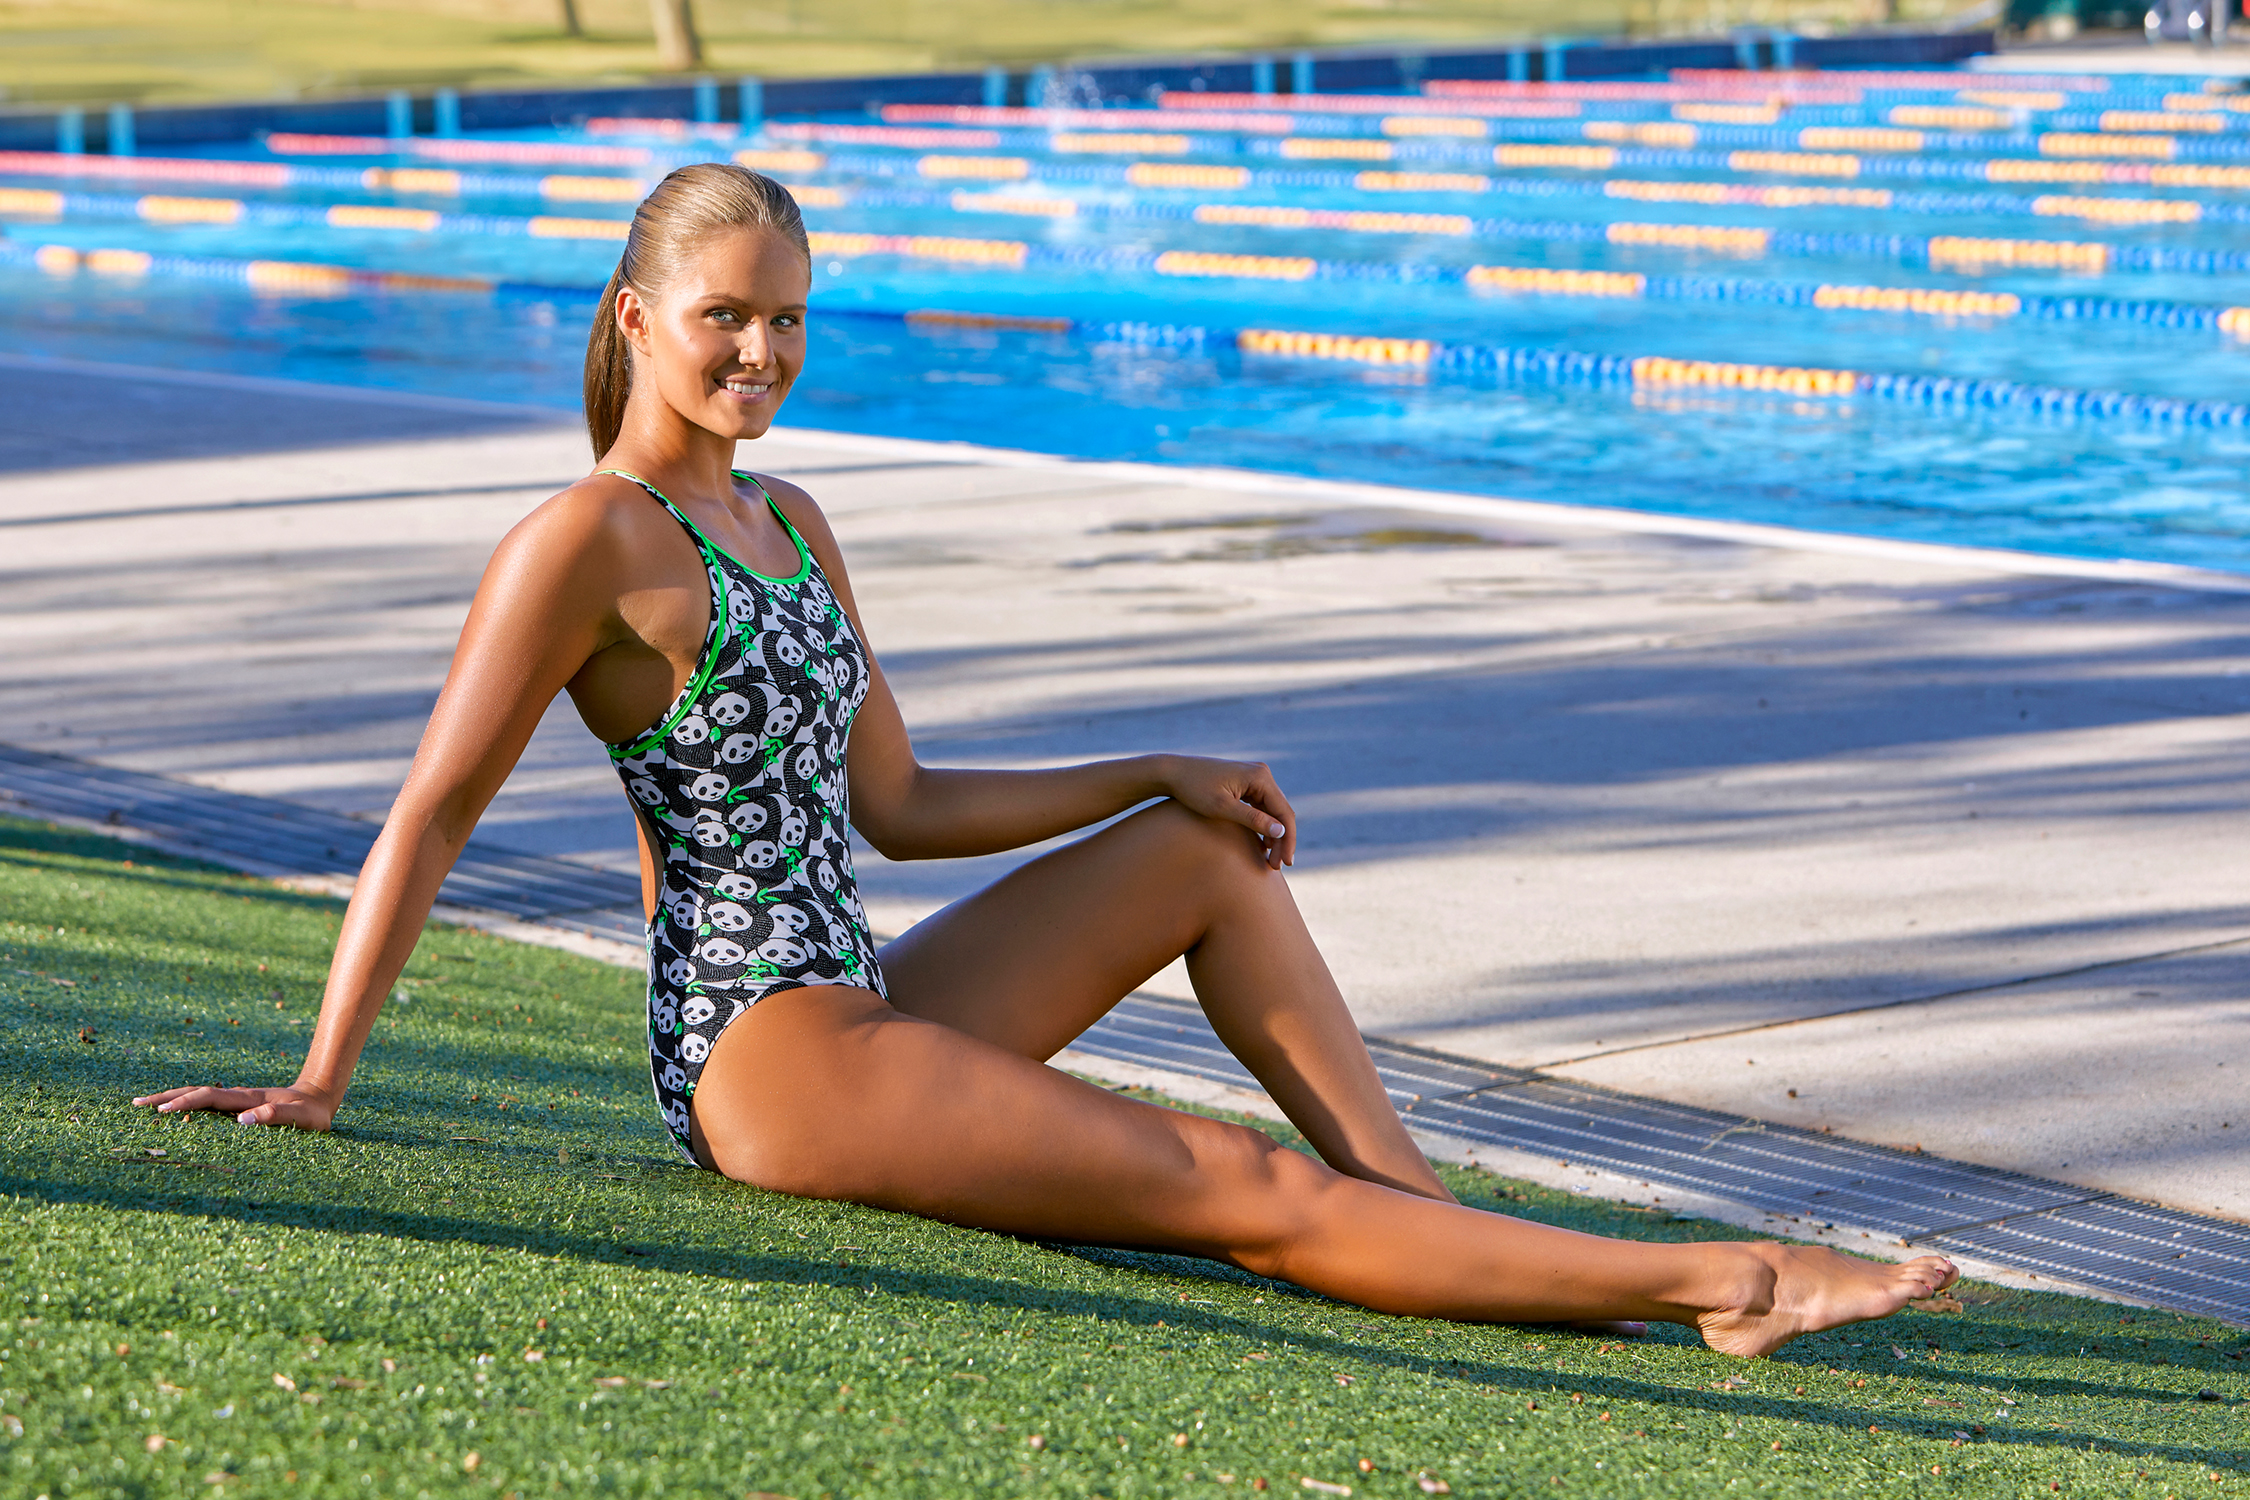 Funkita Pandaddy Girls